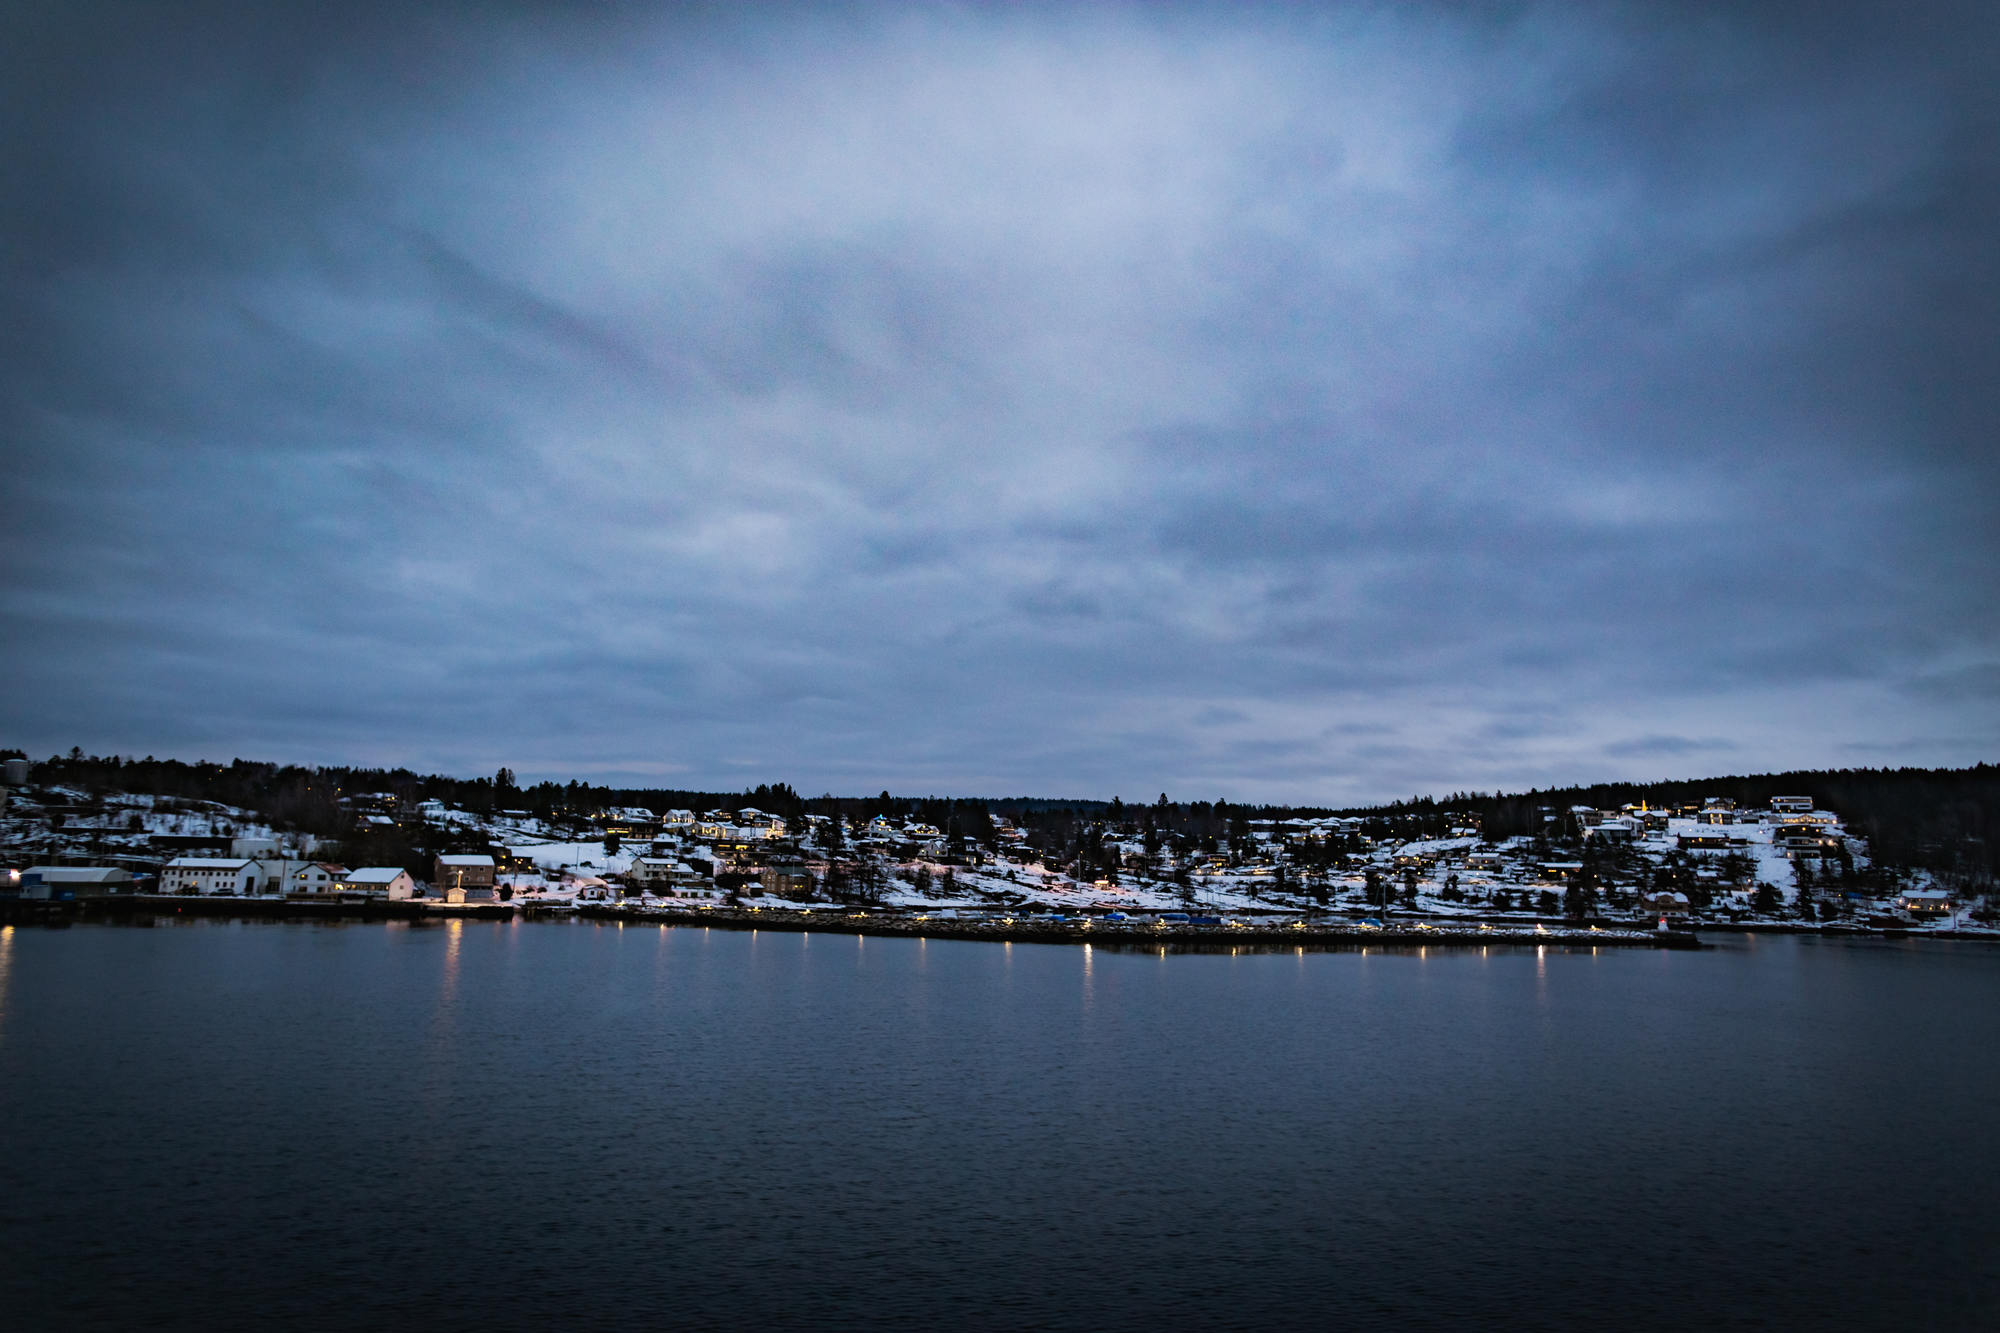 dfds-minicruise-oslo-christmas-time-travel-photography-08